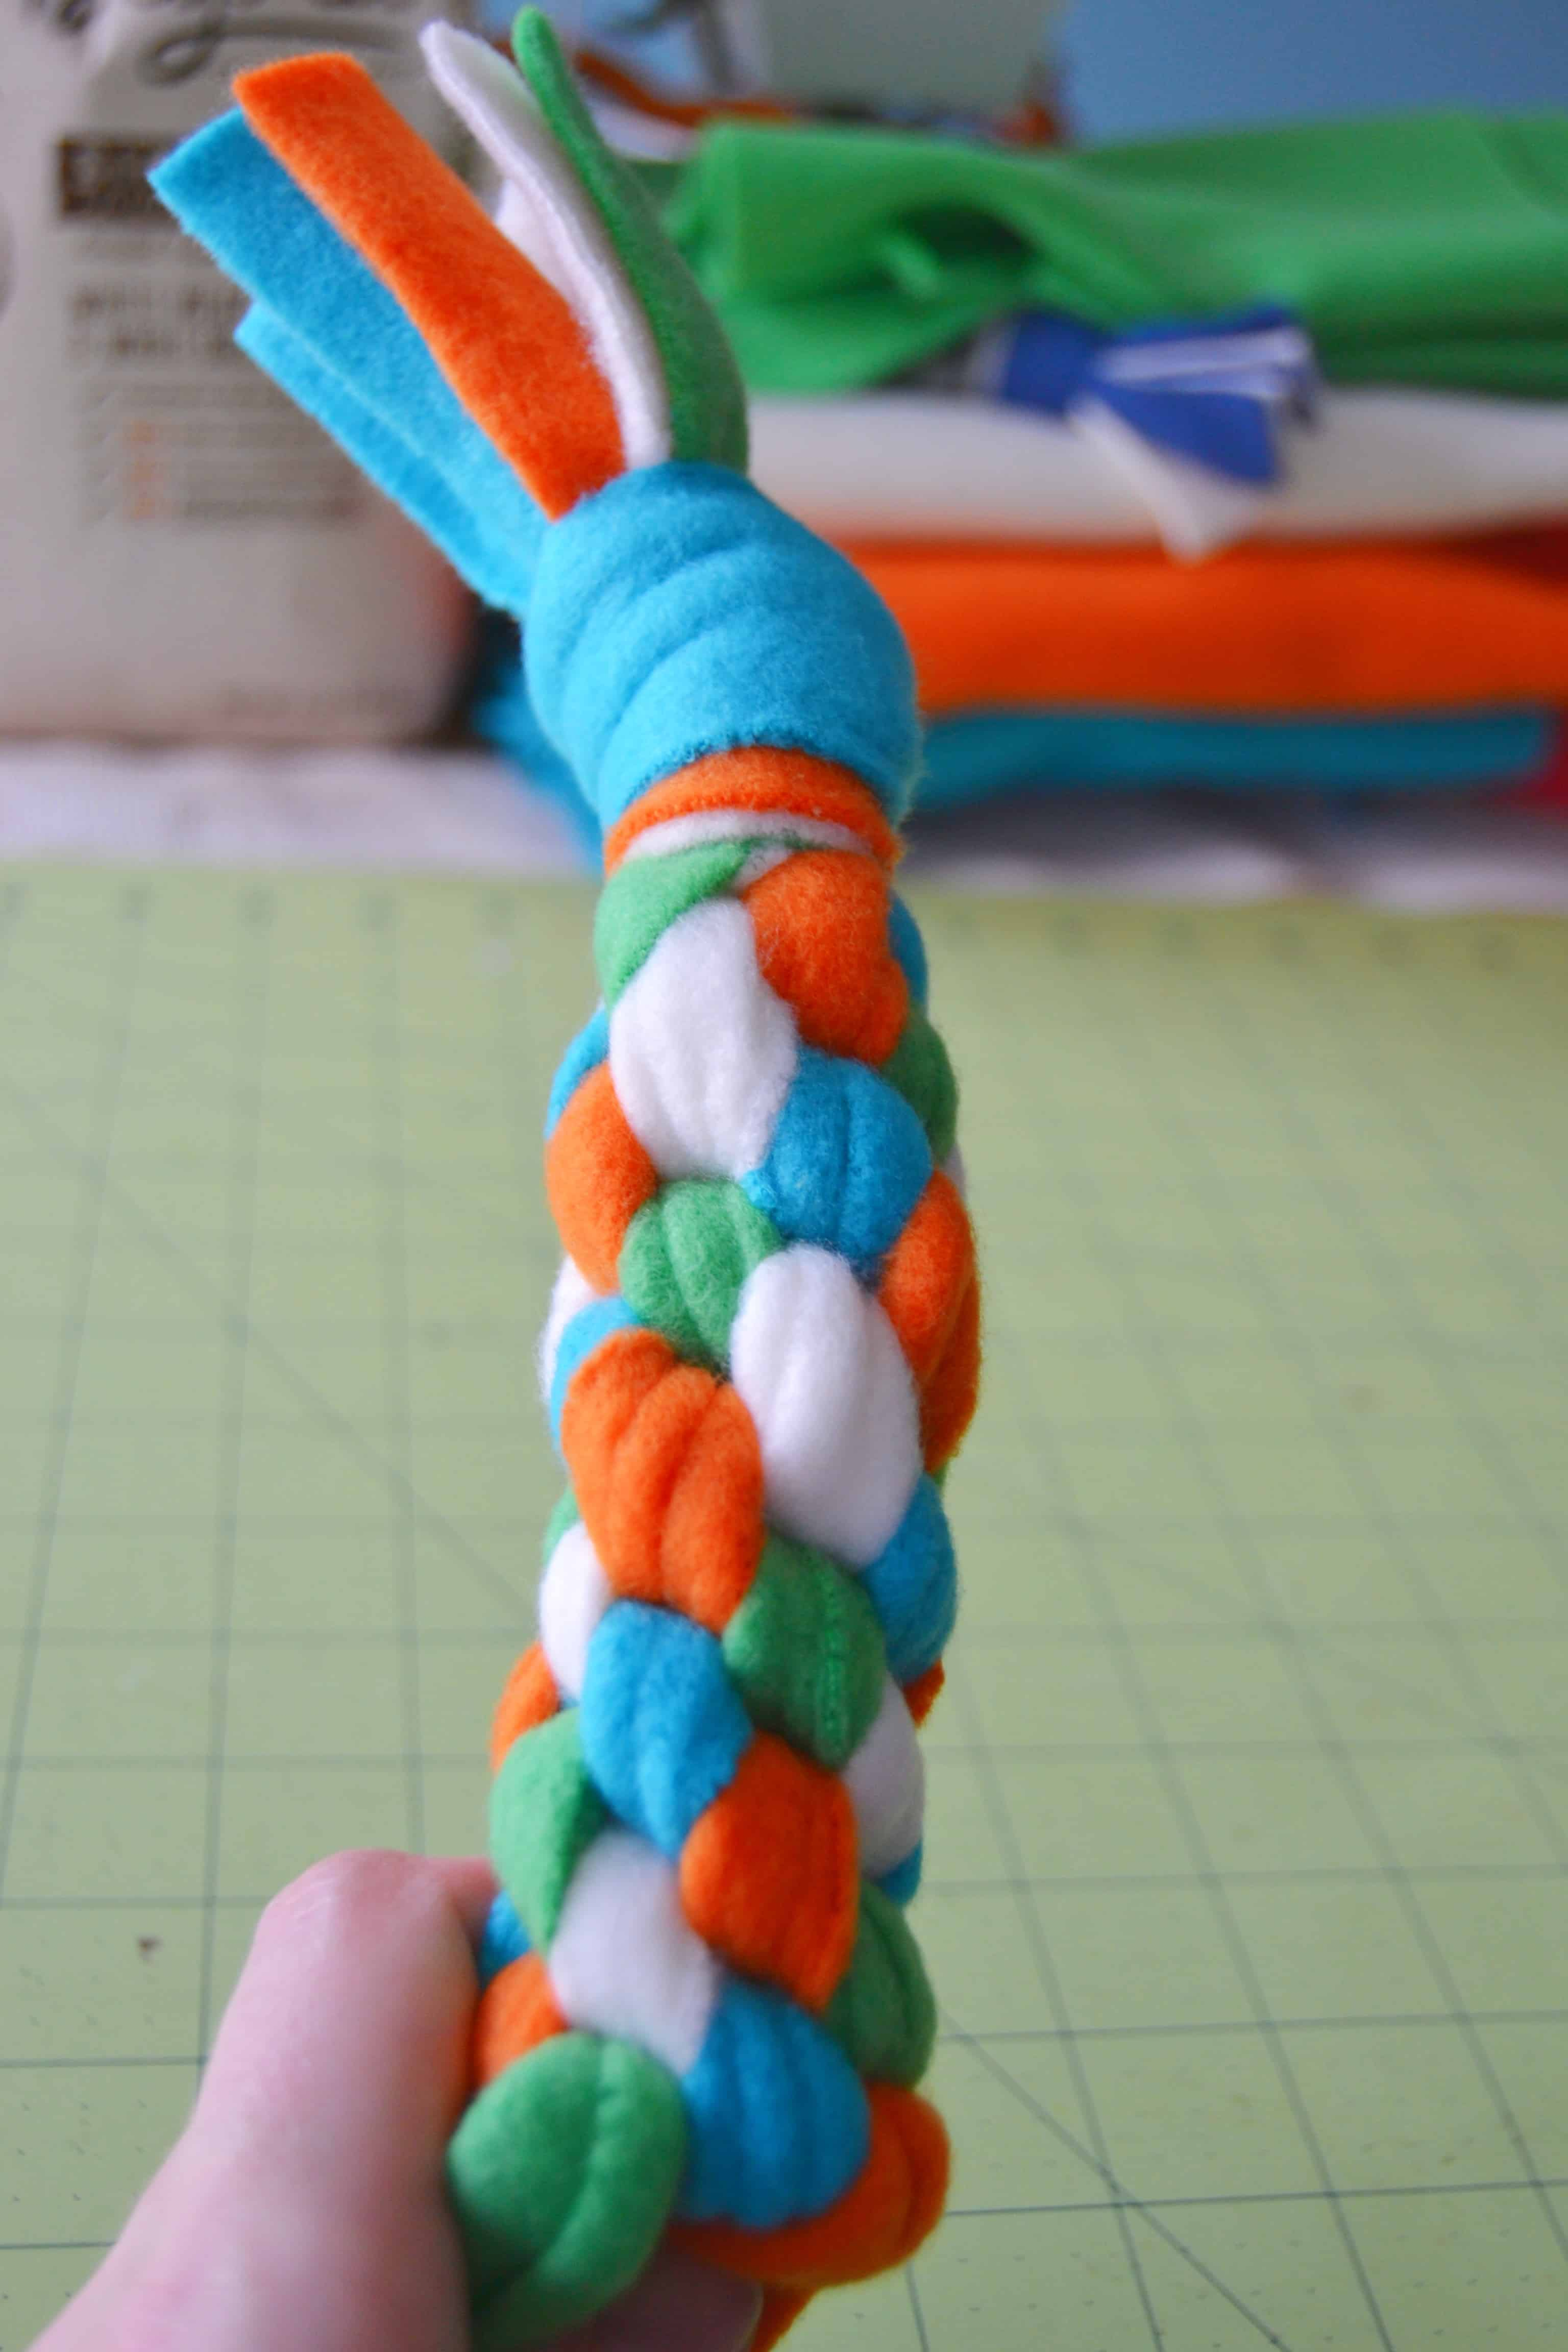 the fleece dog toy mostly finished after repeating the knotting process